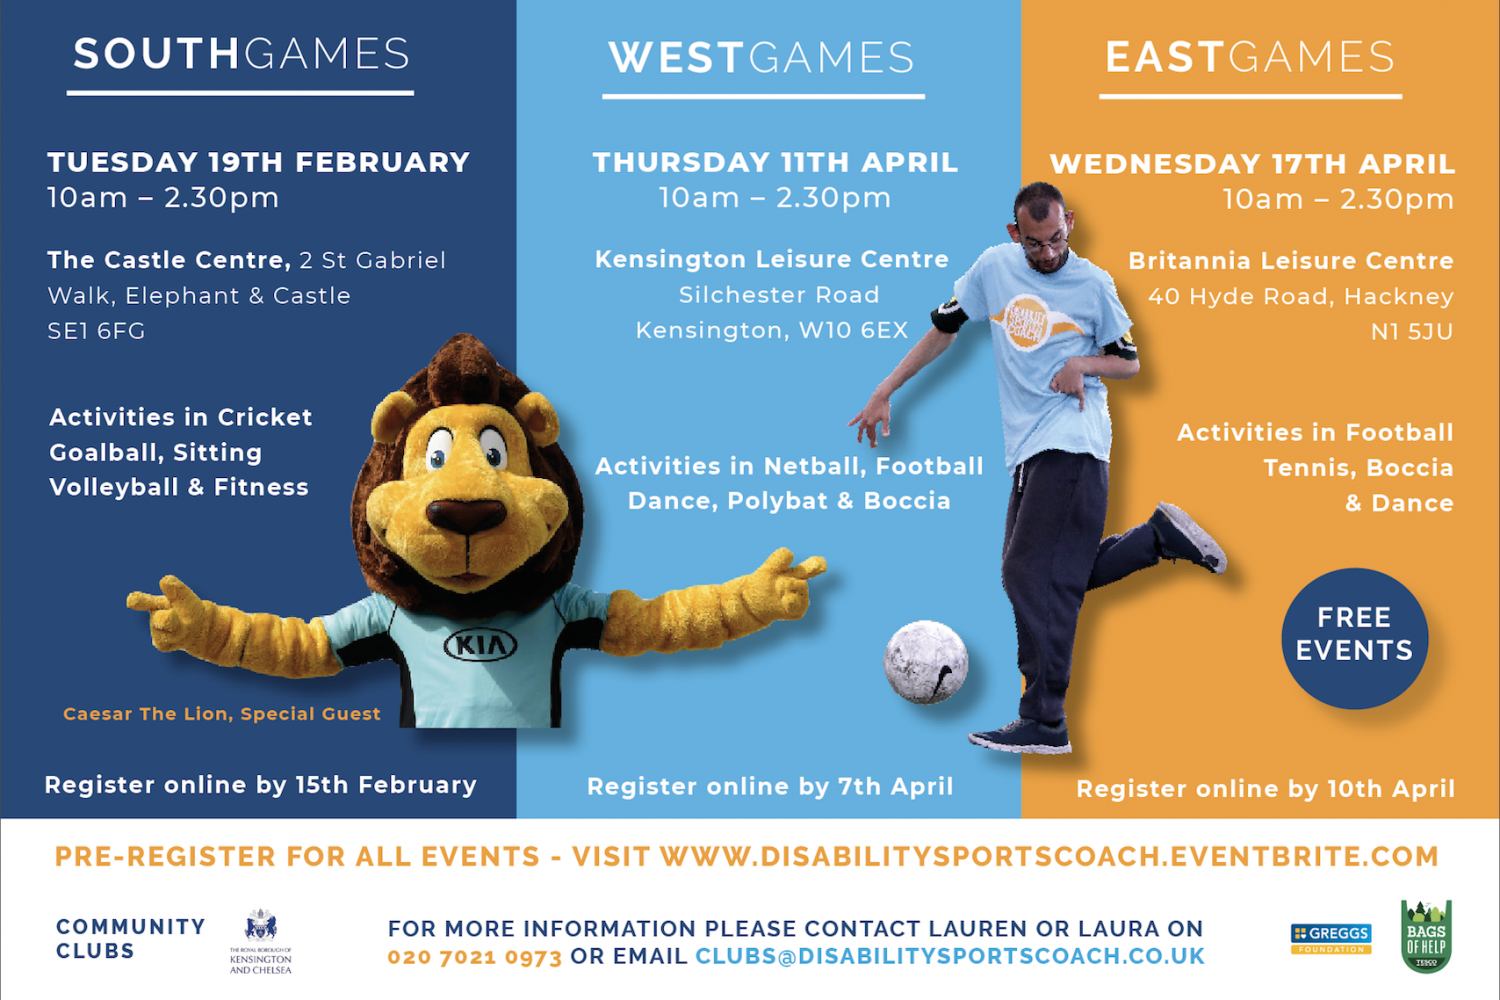 Disability Sports Coach - East ClubGames 2019 - free activities for all disabled people